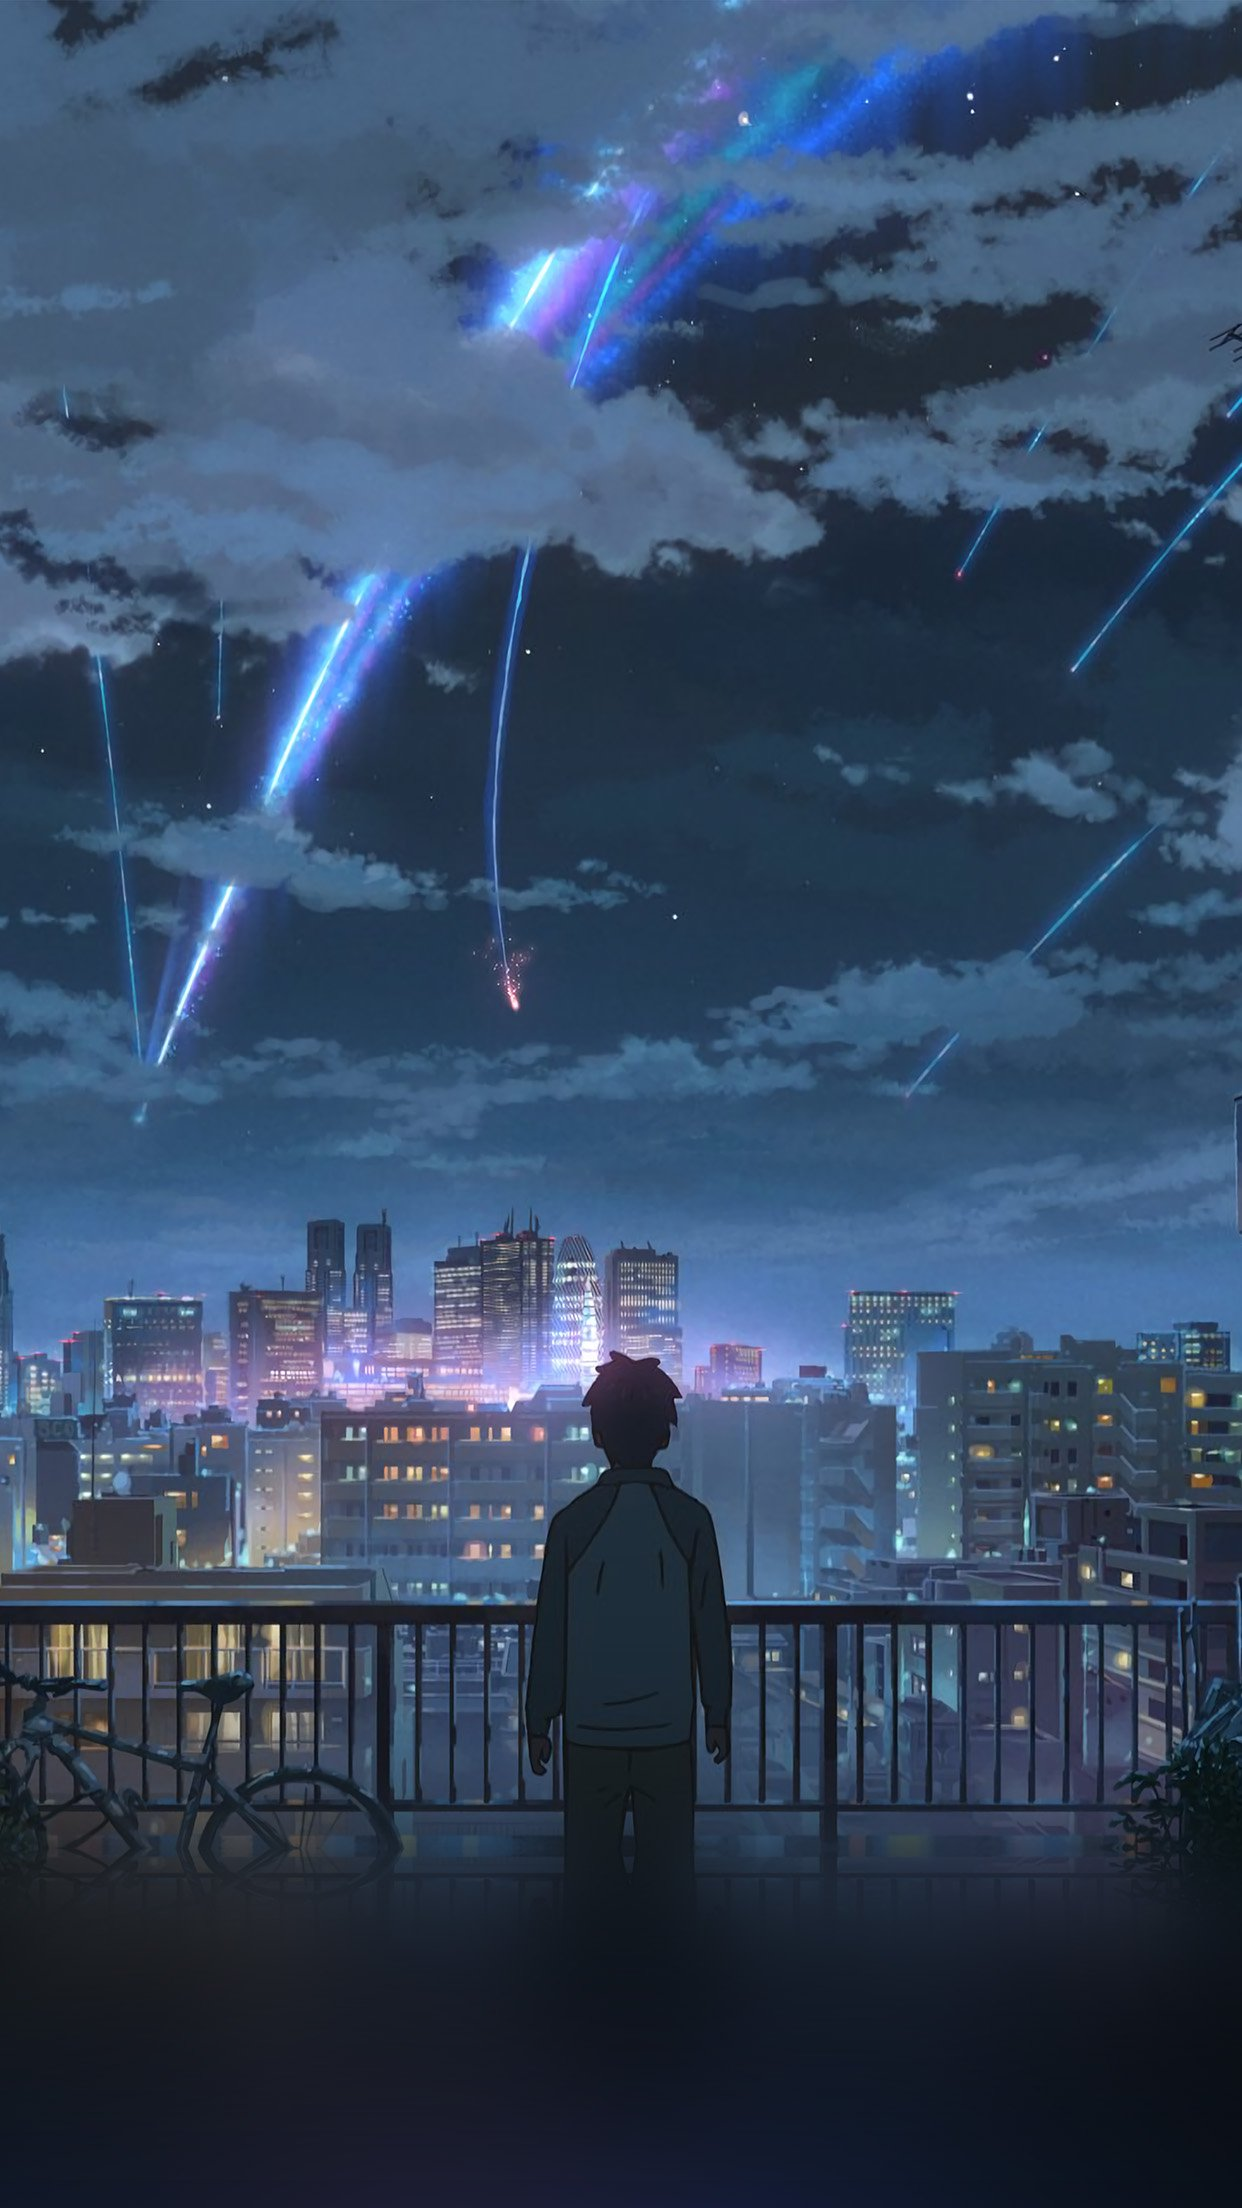 Flares Yourname Anime Android Wallpaper Anime Wallpaper Gif Iphone 1242x2208 Wallpaper Teahub Io